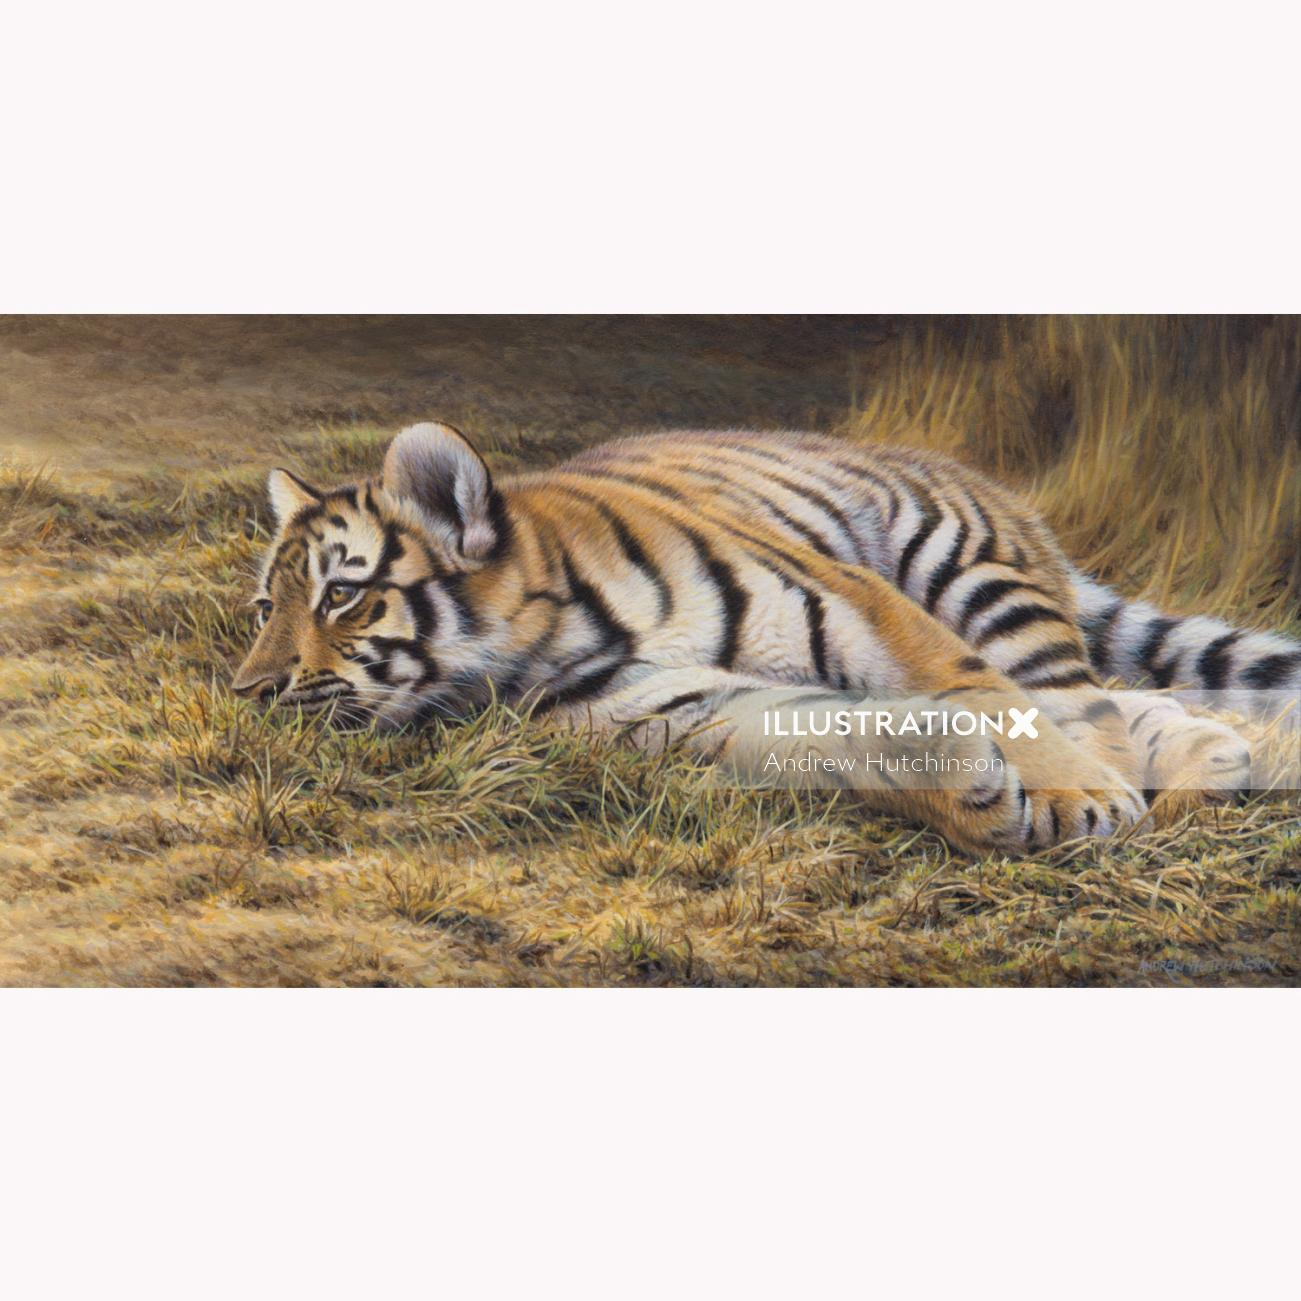 Tiger Sleeping Illustration, Wildlife Images © Andrew Hutchinson